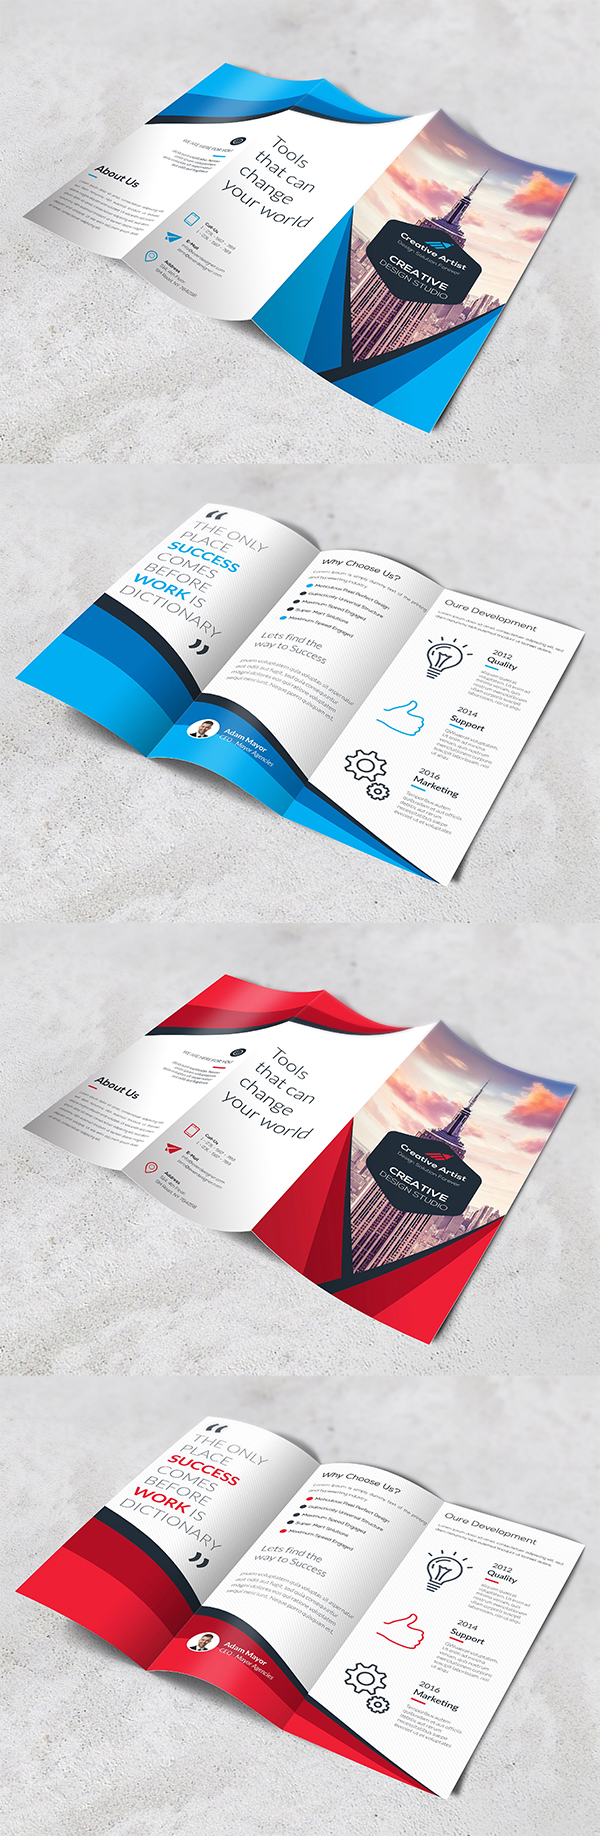 Crreative Trifold Brochure Template